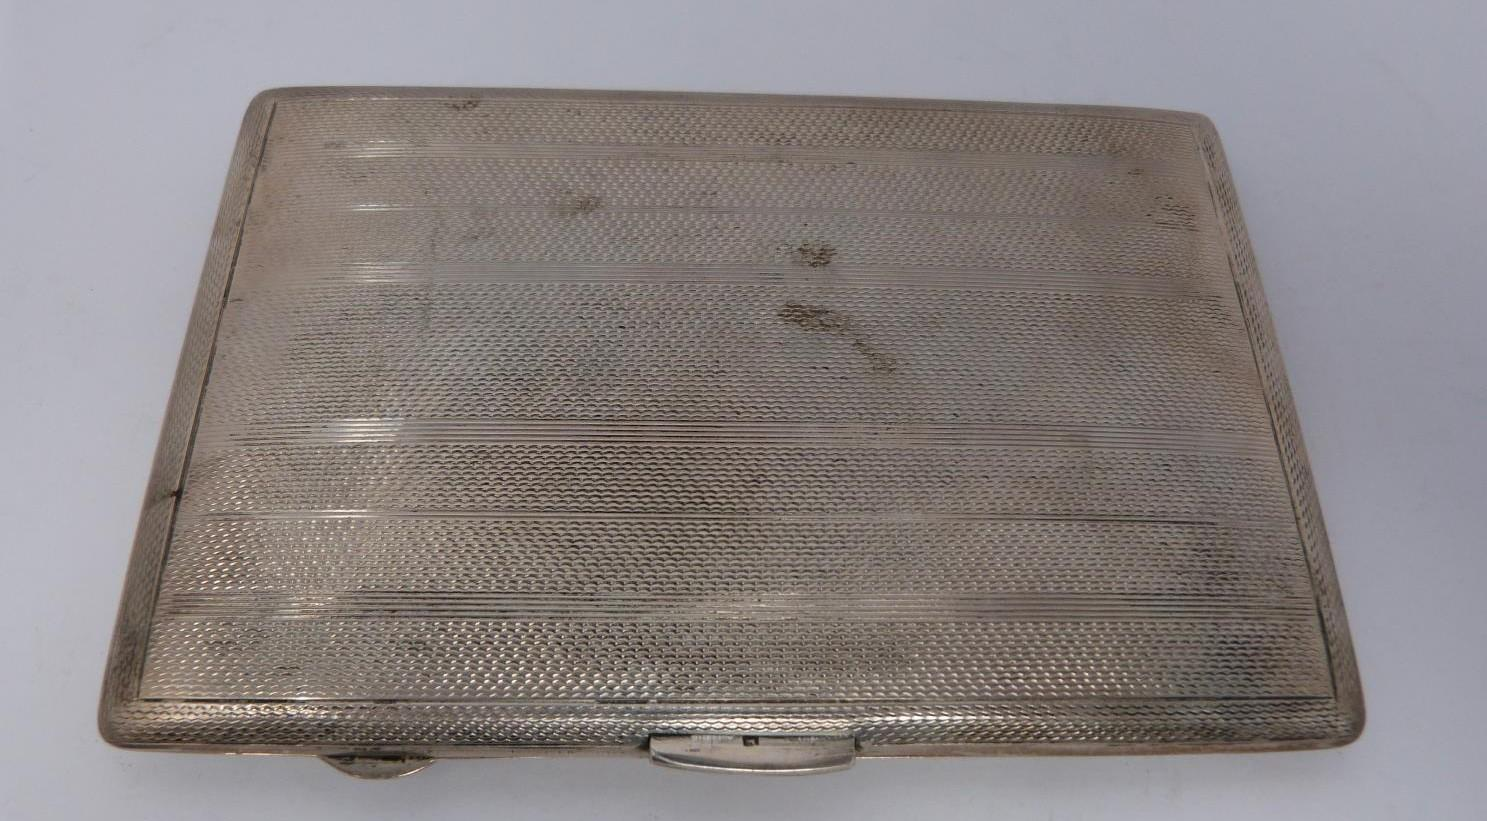 Two silver cigarette cases and a silver cigarette box, rectangular engine turned decoration case, - Image 12 of 14